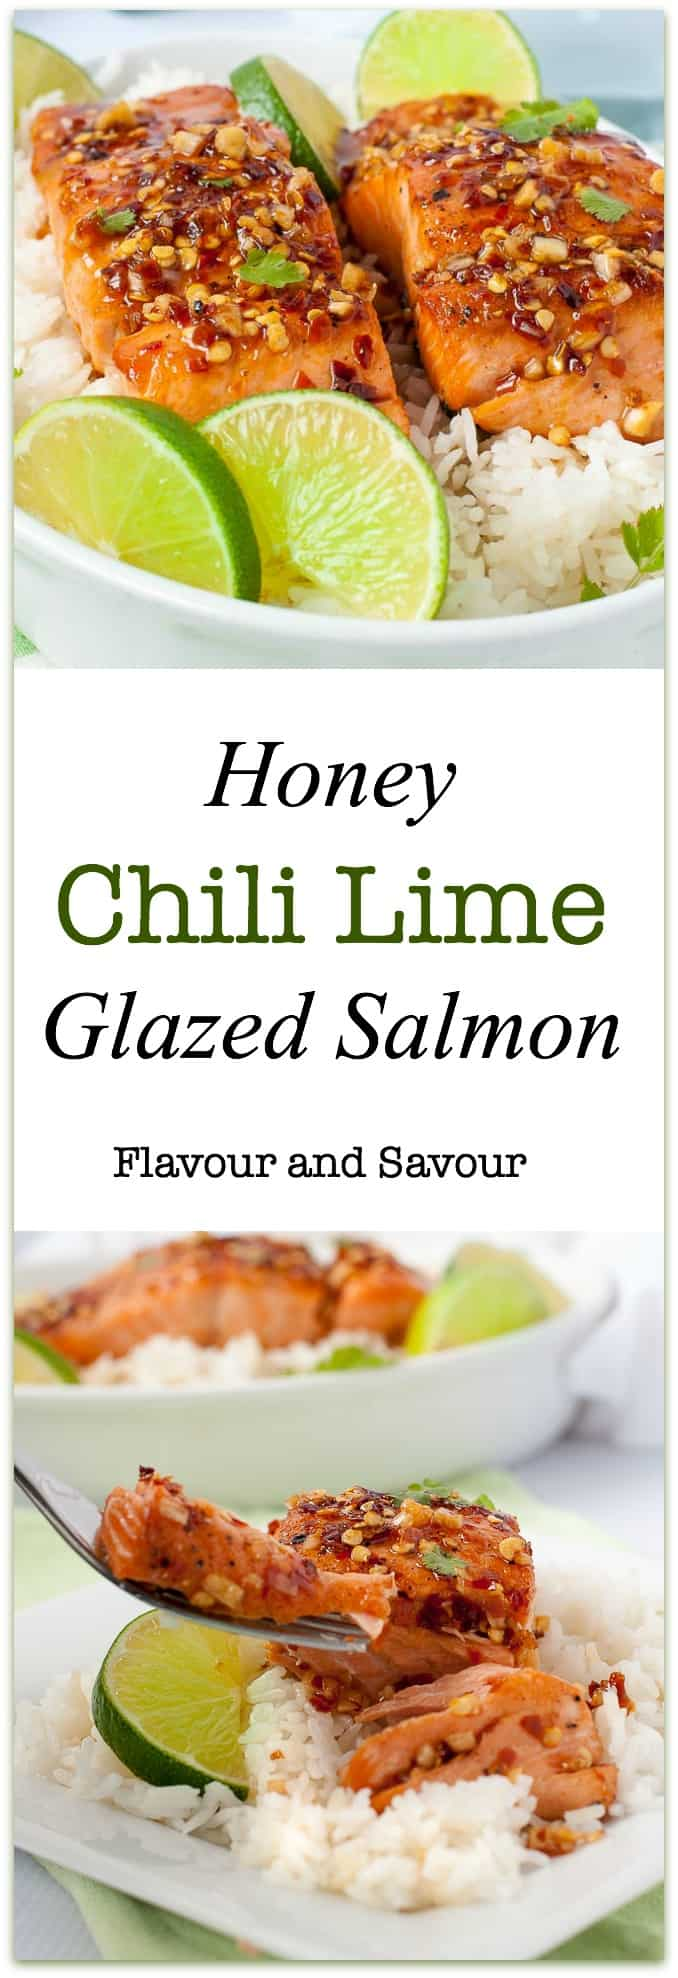 You only need 4 ingredients that you probably have on hand to make the glaze for this sweet and tangy Honey Chili Lime Glazed Salmon. Cooks in 15 minutes!